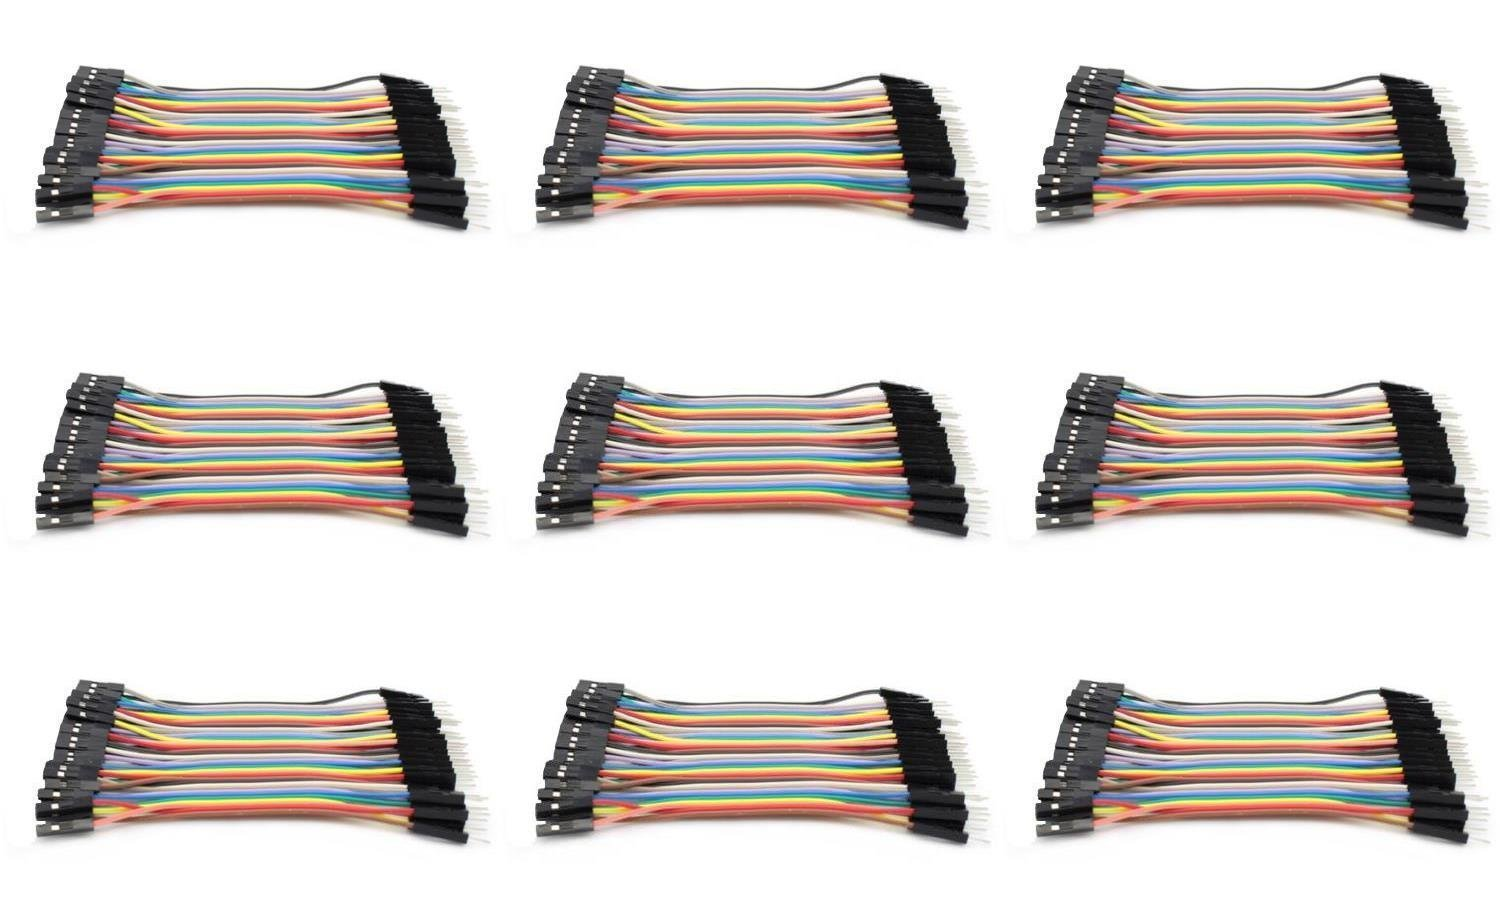 9 x Quantity of Walkera QR X350 PRO Dupont 40 Qty 10cm 2.54mm 1pin Female to Male Jumper Wire Cables - FAST FROM Orlando, Florida USA